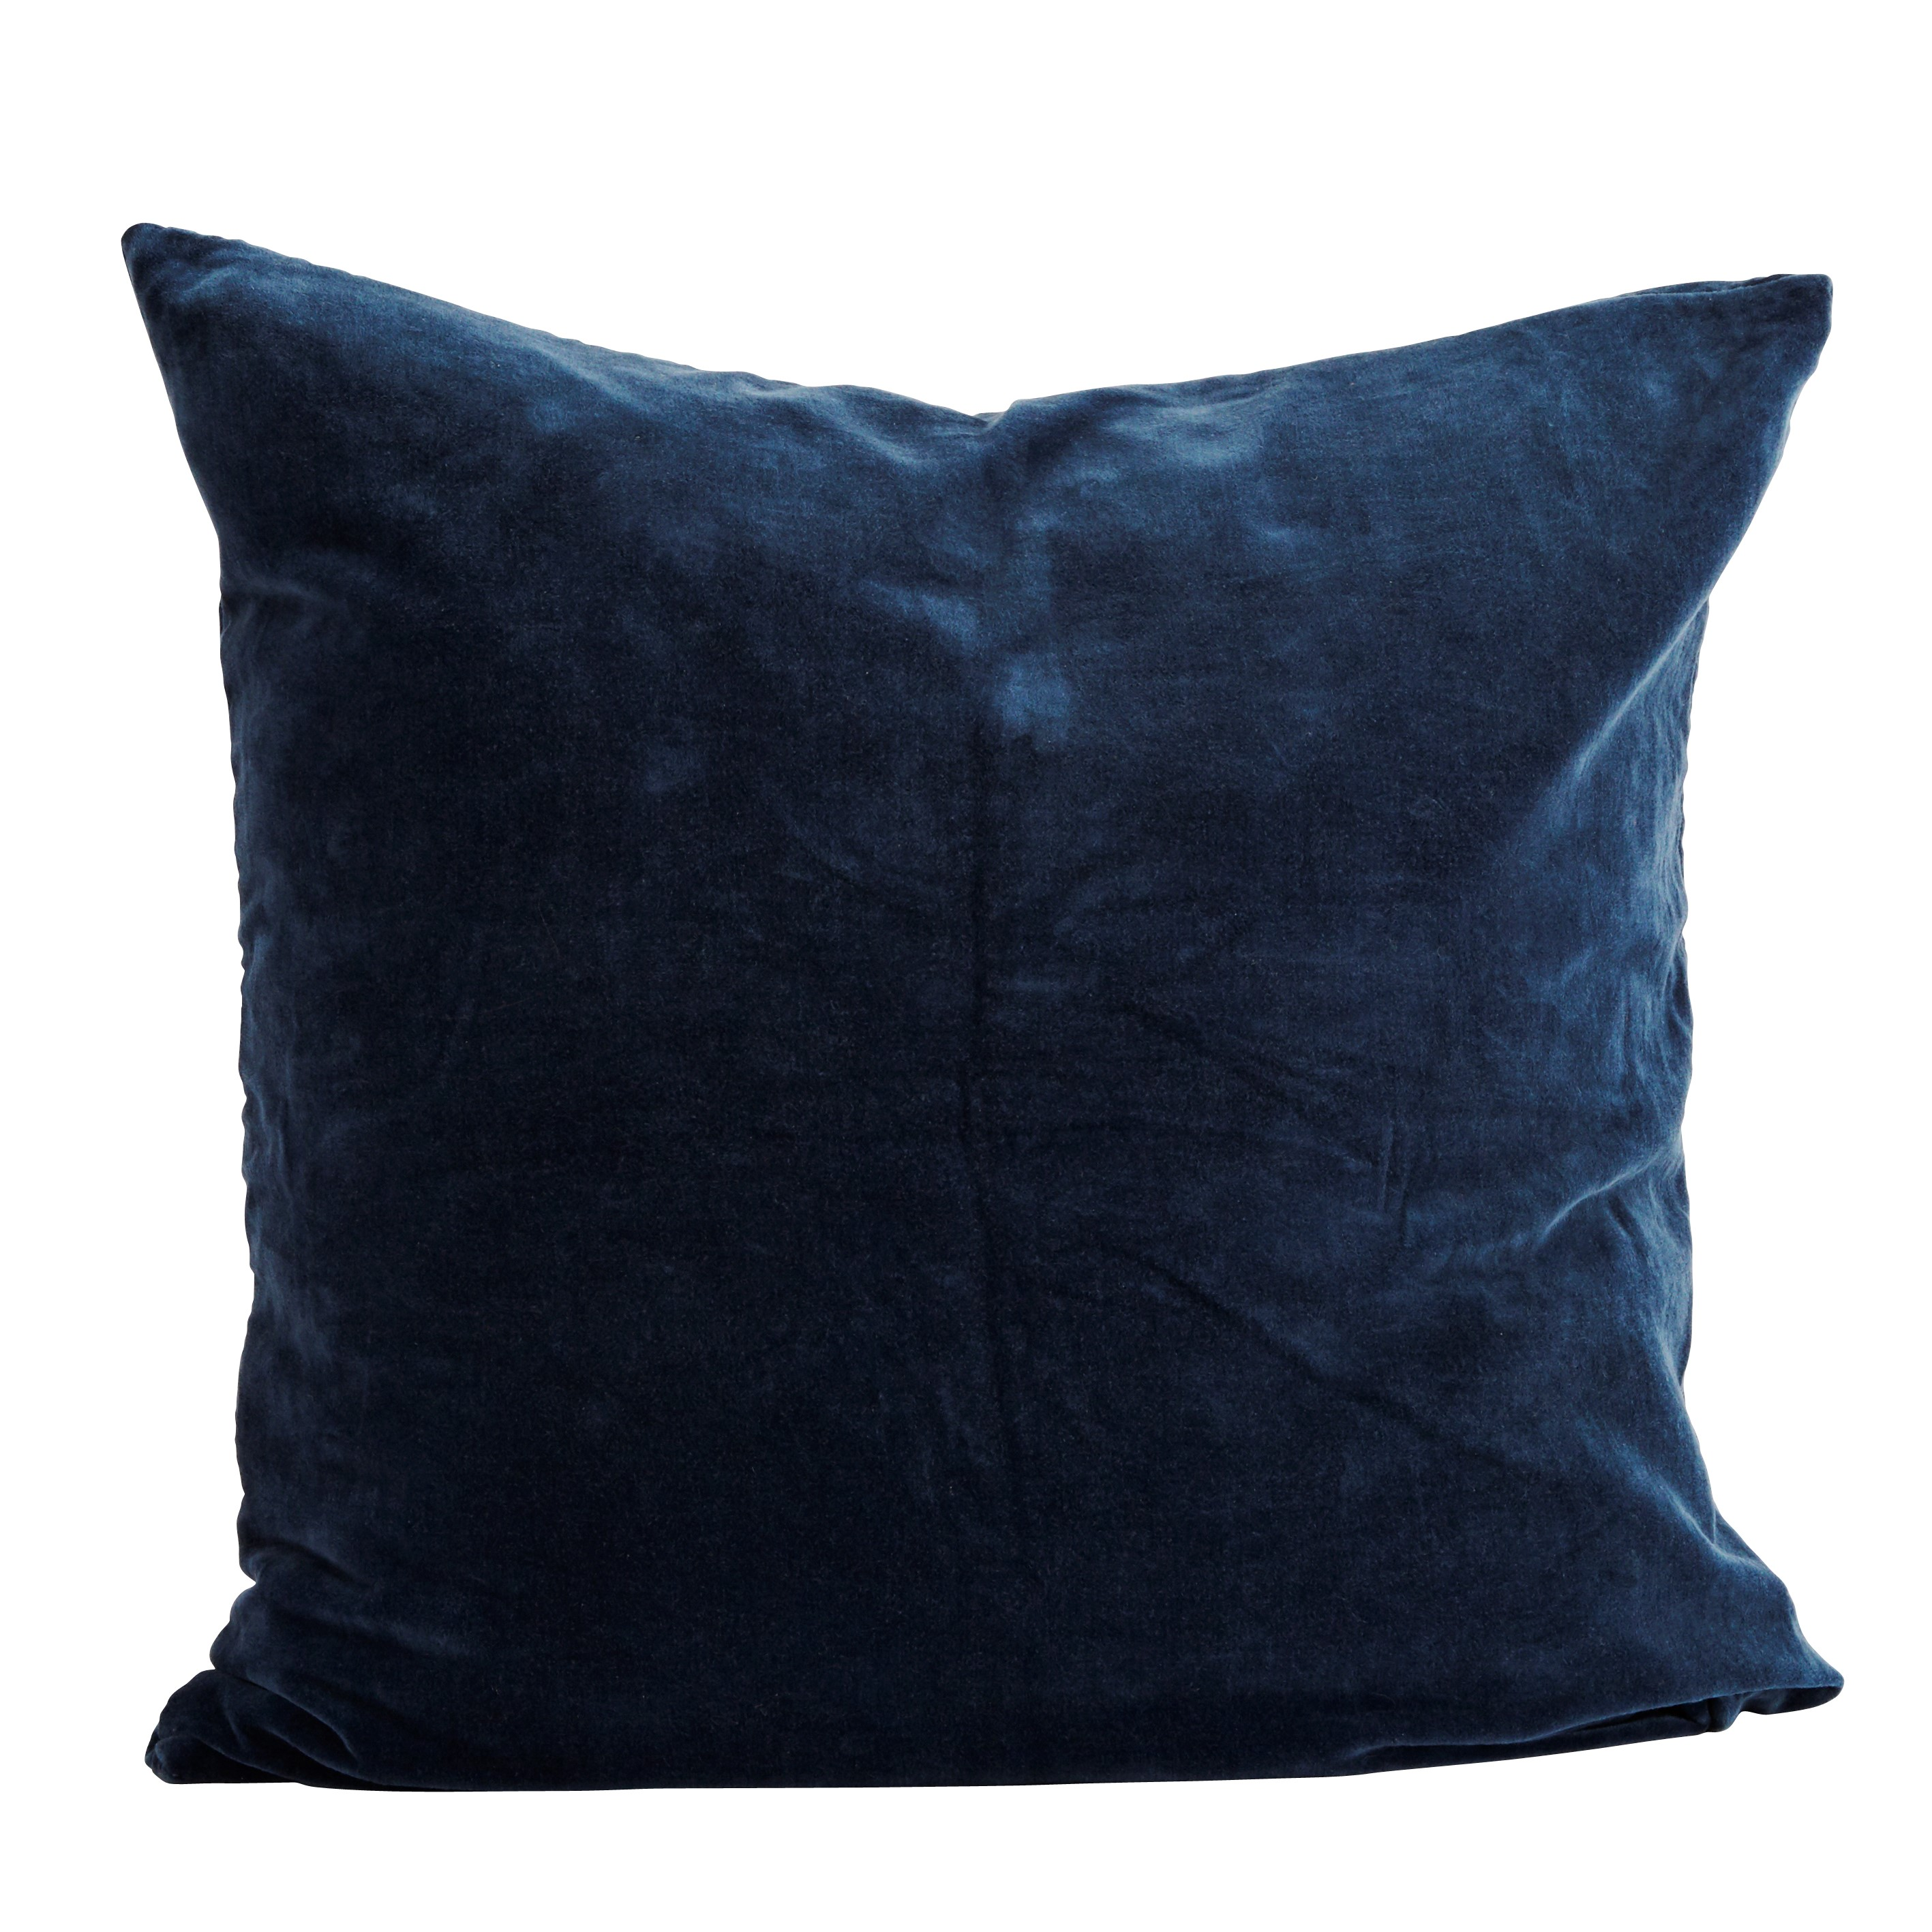 Blue Velvet Cushion Trouva Blue Velvet Cushion Cover 60 X 60 Cm